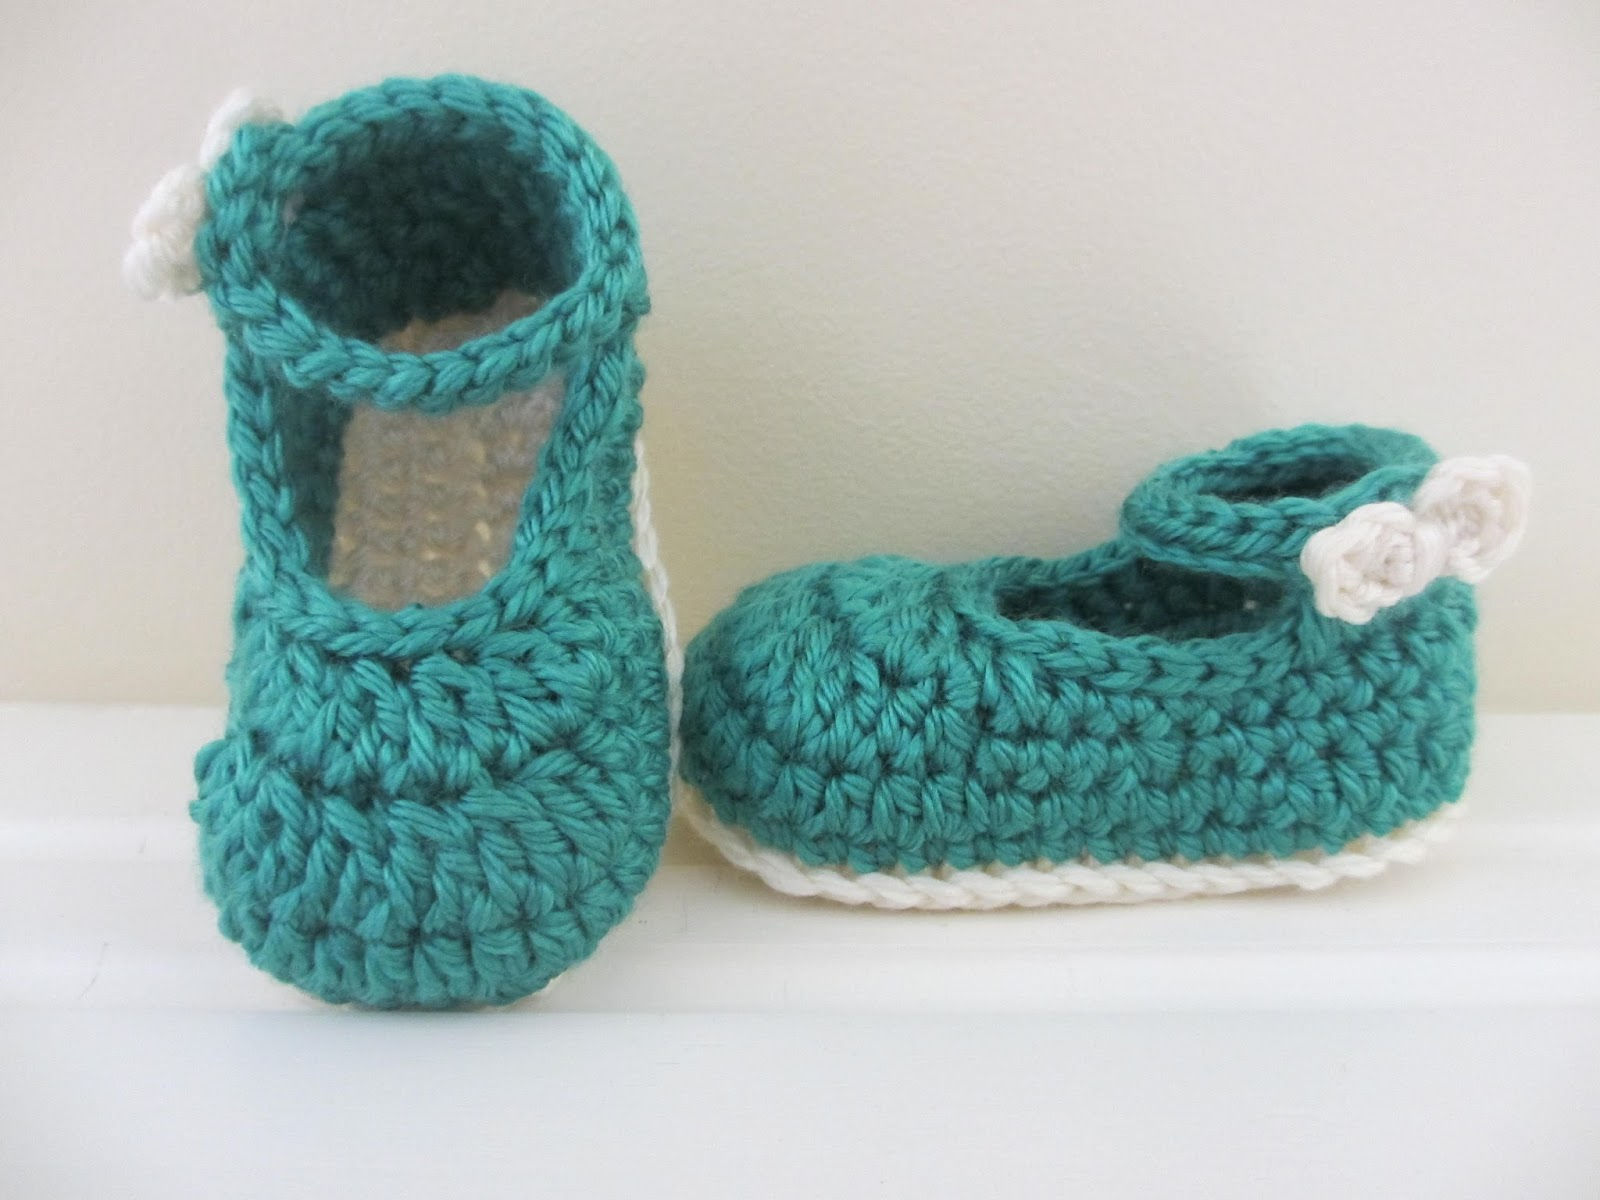 Crochet Mary Jane Baby Slippers Pattern (FREE) 7